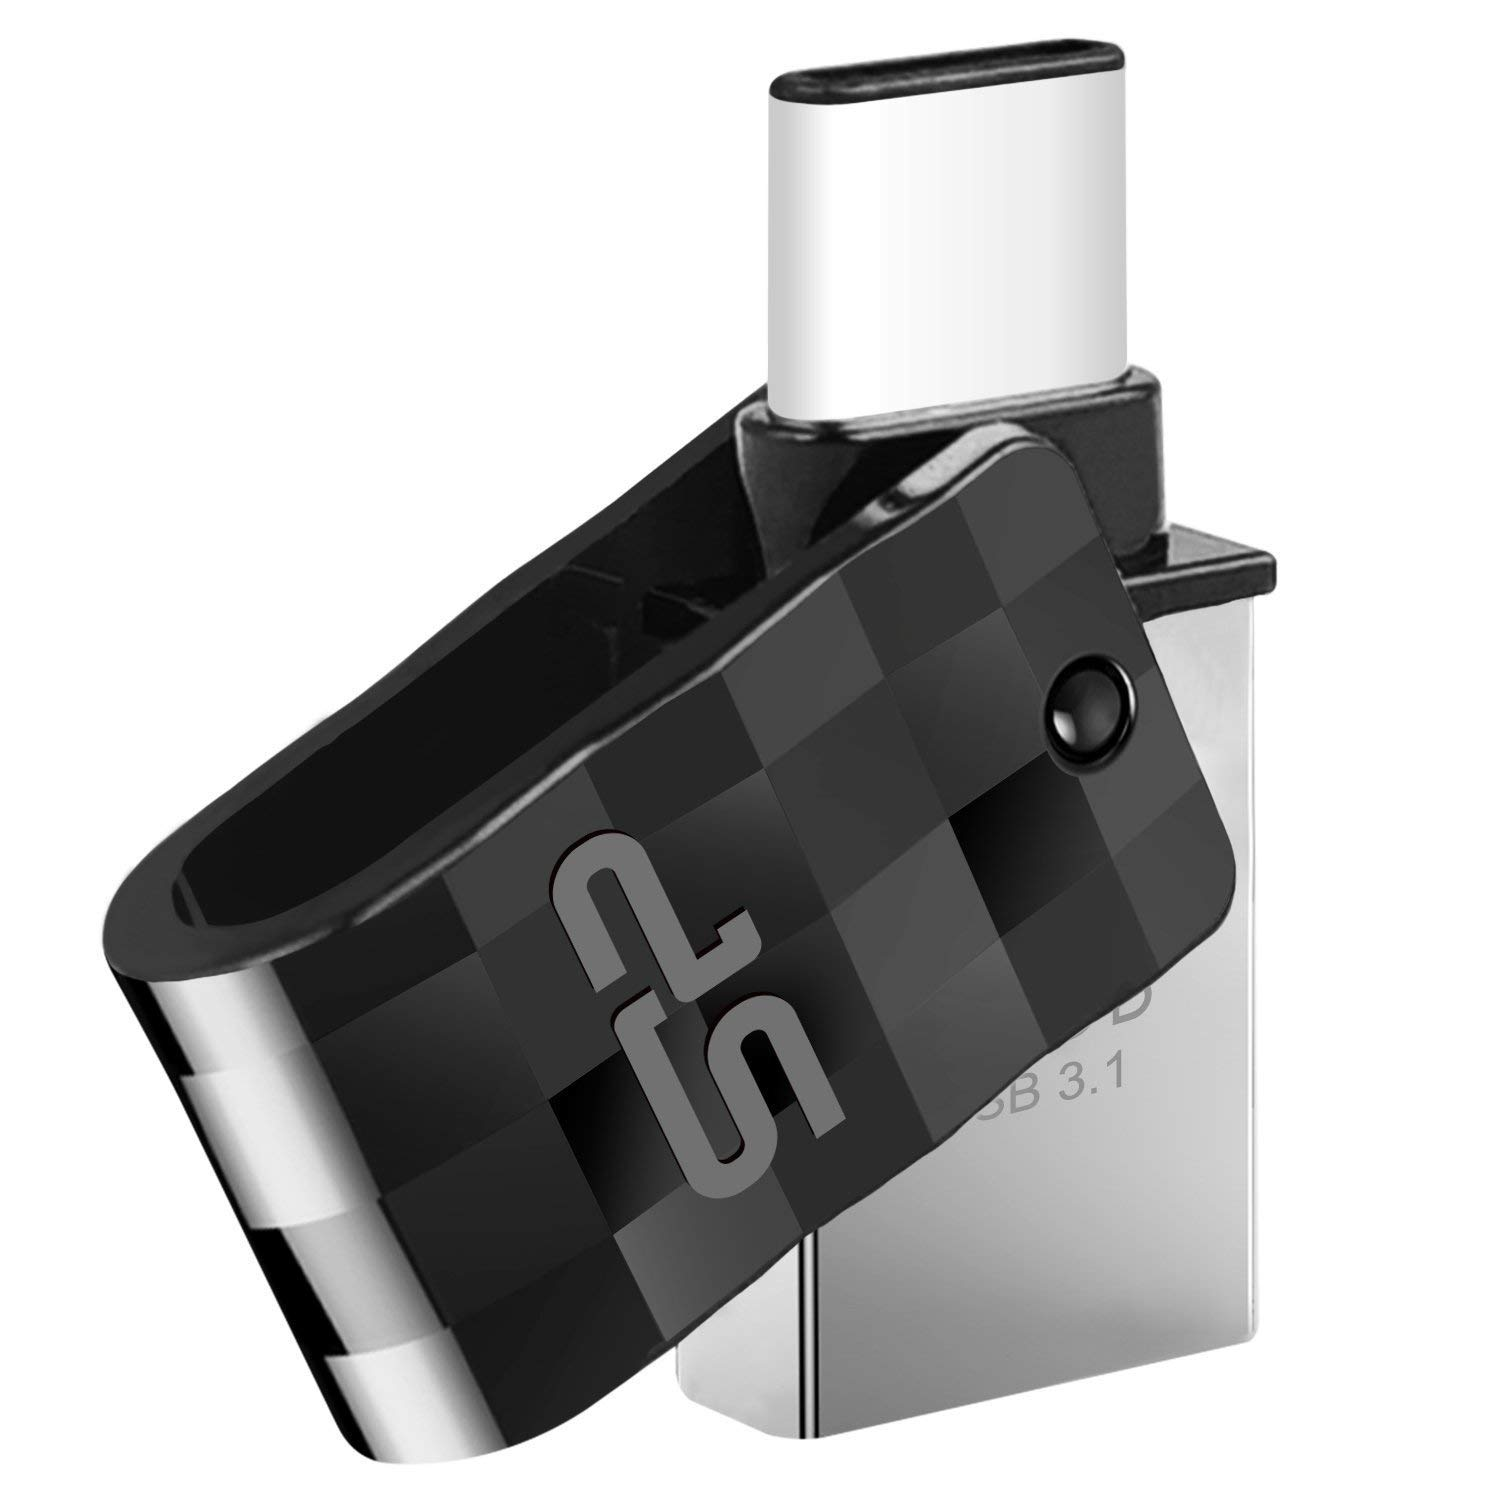 Silicon Power OTG Dual Flash Drive Type_C 32GB USB 3.1